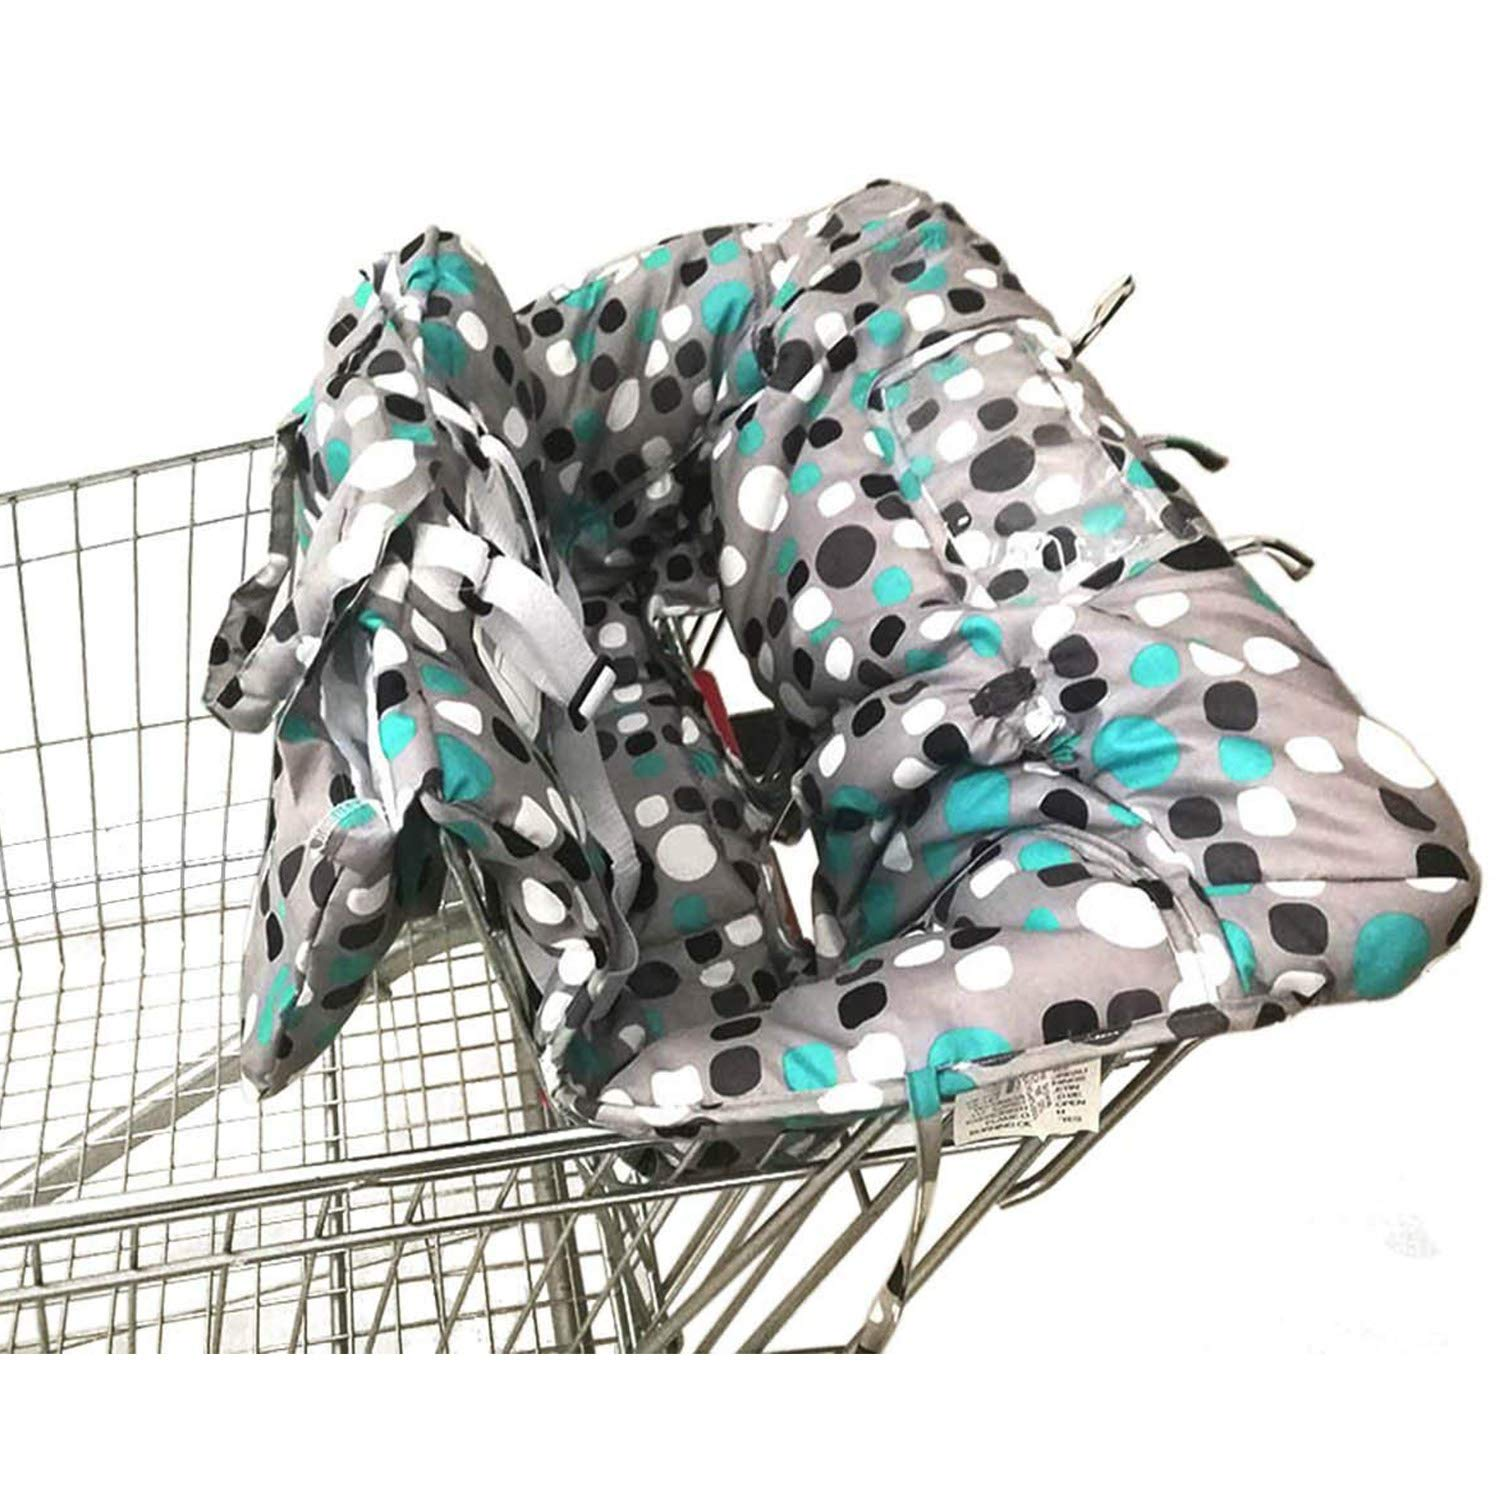 Shopping Cart Cover   High Chair and Grocery Cart Cover for Babies, Kids, Infants & Toddlers   2in1 Baby Shopping Cart Covers Fits Highchairs and Shopping Cart Seats ? Includes Free Carry Bag ?